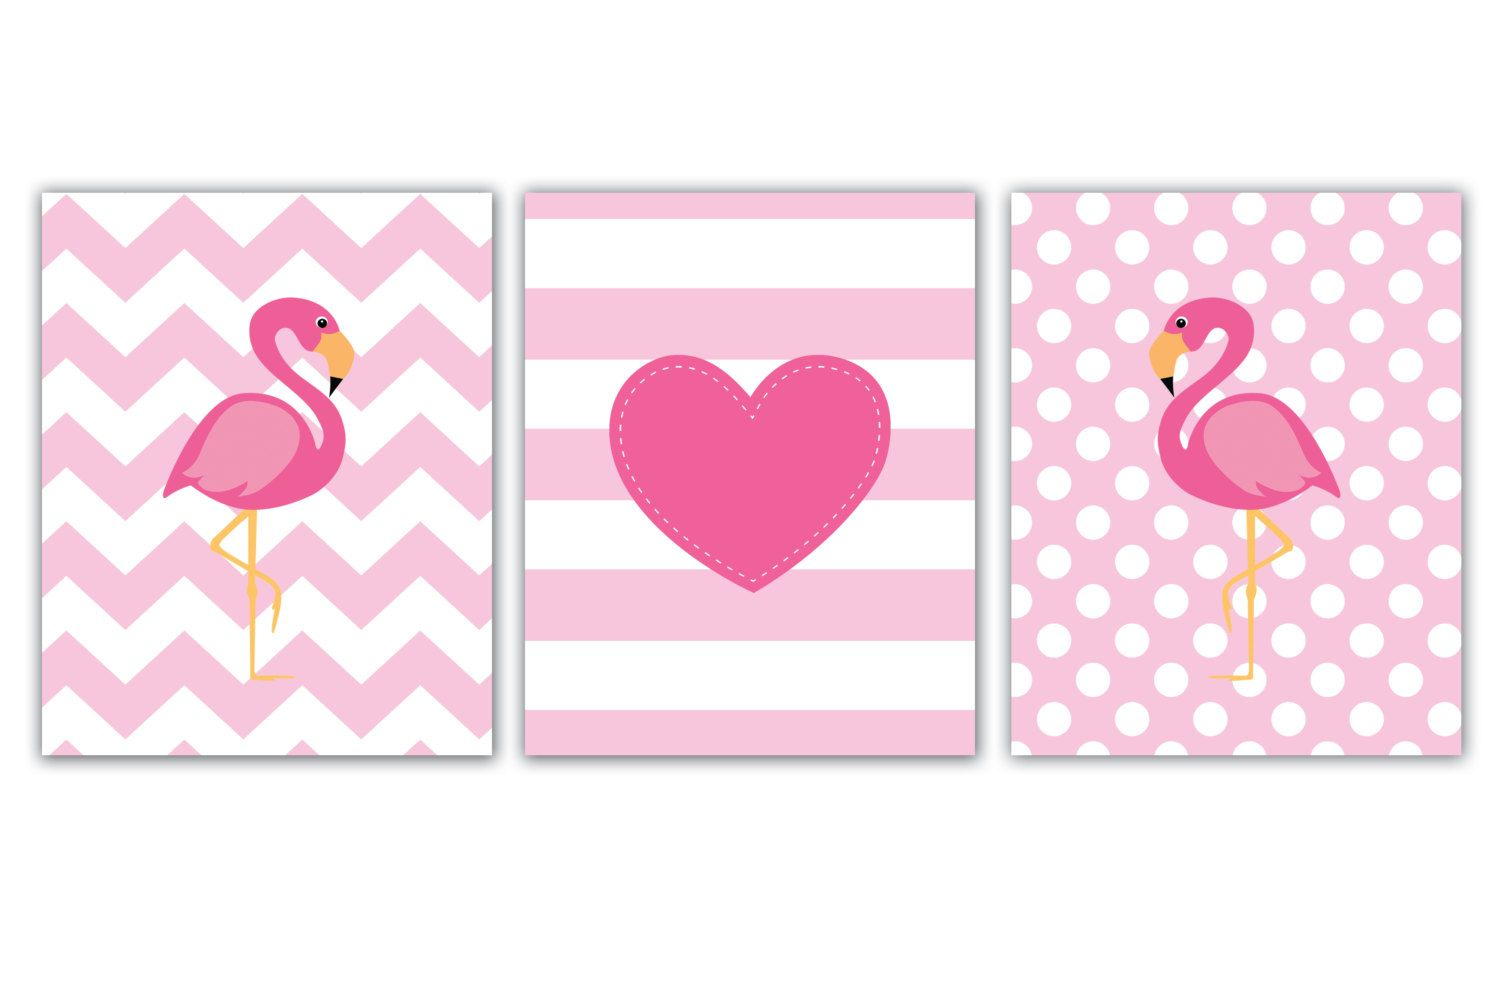 Kinderzimmer wand zitate this too flamingo print set nursery wall decor in pink and by